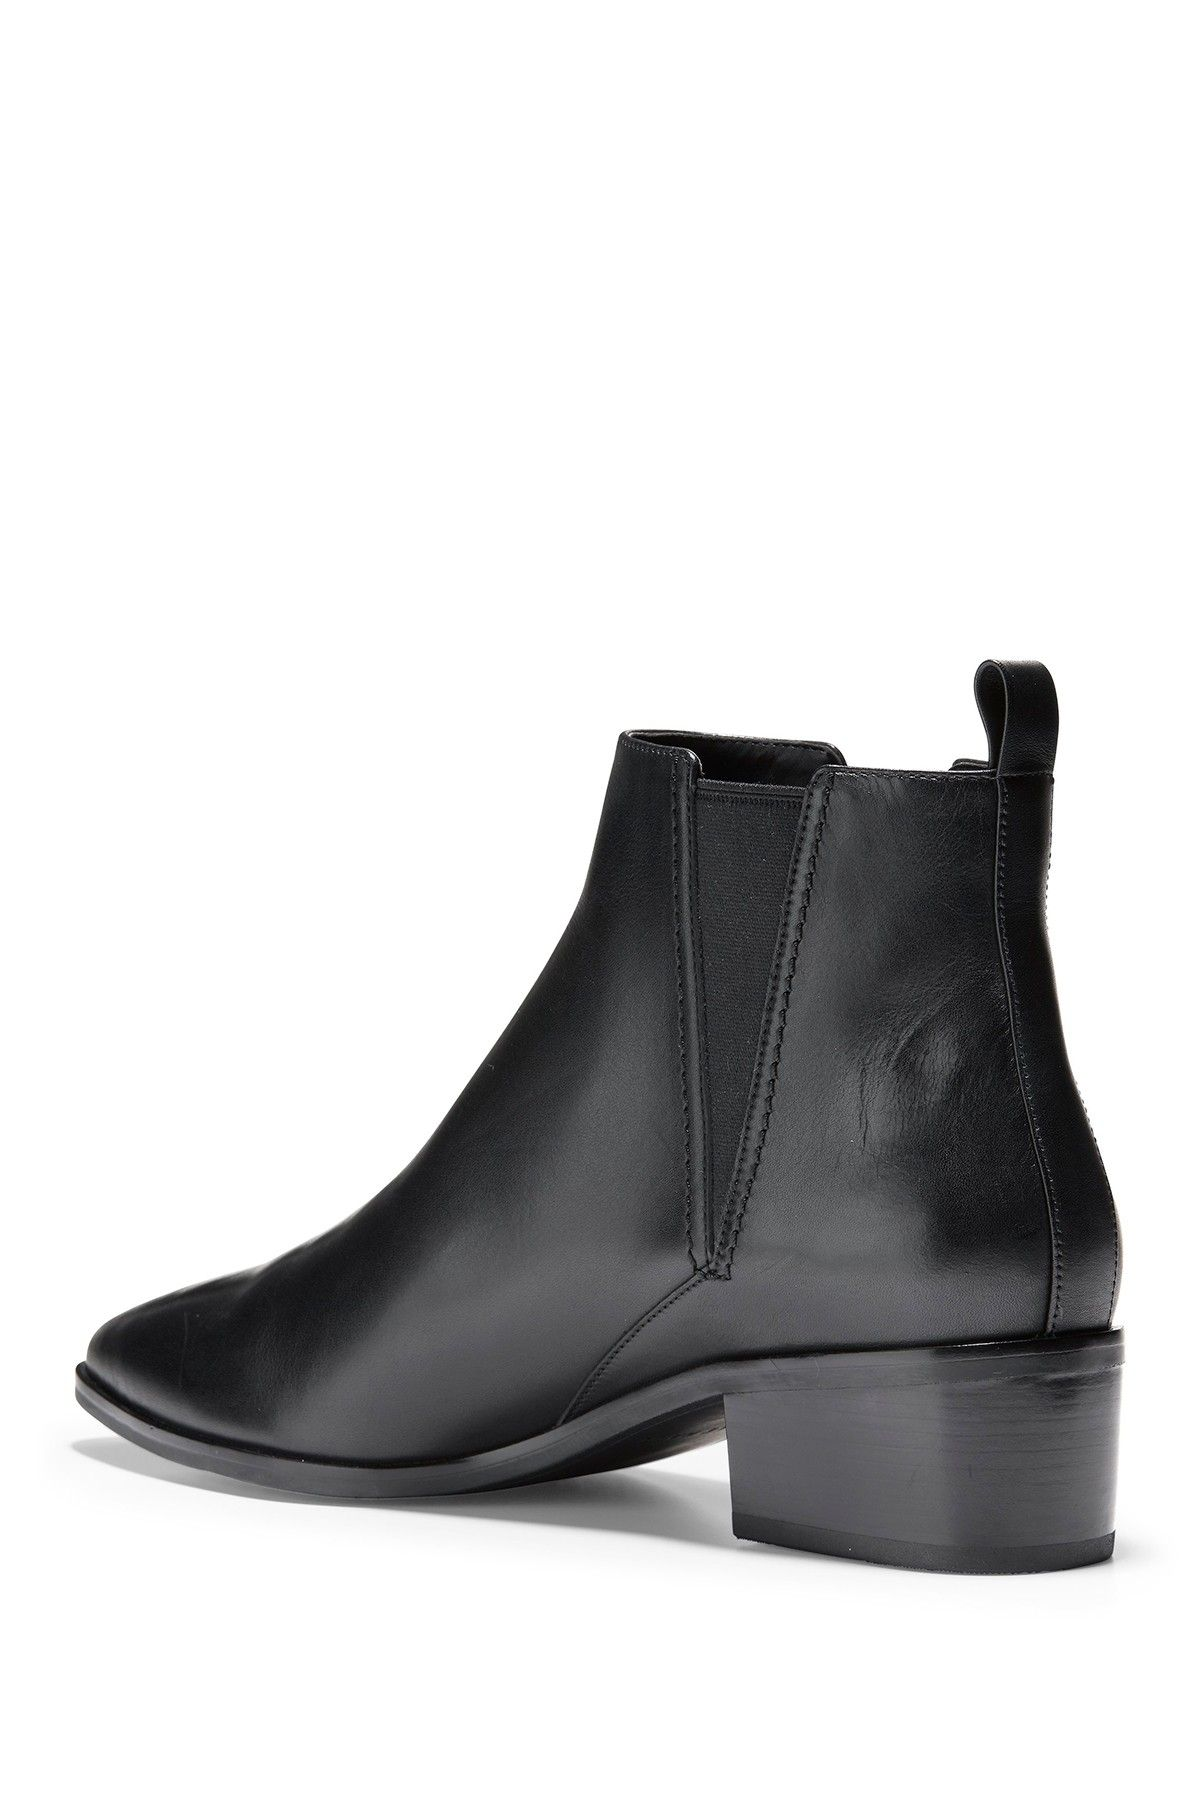 Cole Haan | Marinne Pointed Toe Chelsea Bootie | Chelsea